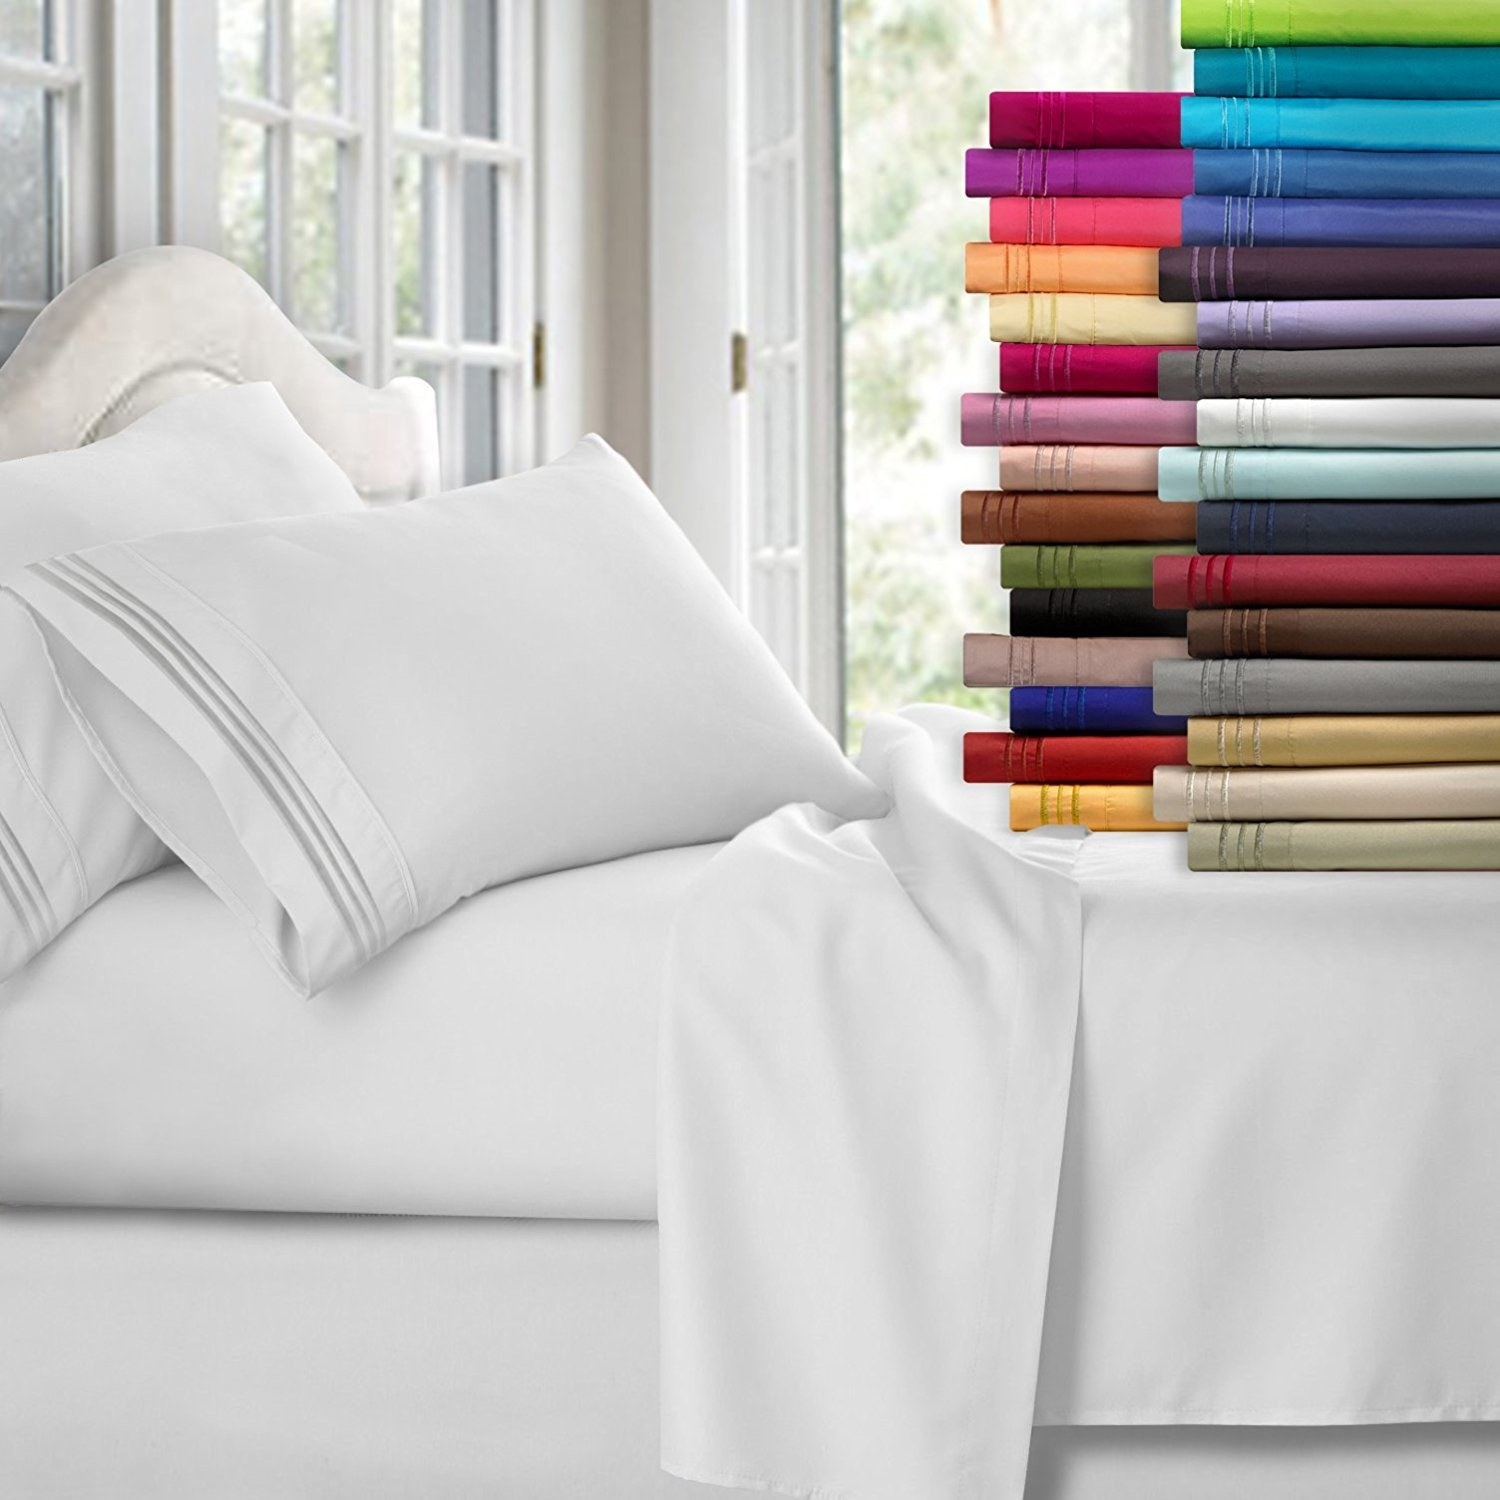 Amazon Offers One Of, If Not, The Largest Selection Of Sheets Online, Many  With A Ton Of Reviews, So You Know What Youu0027re Buying Before You Commit.